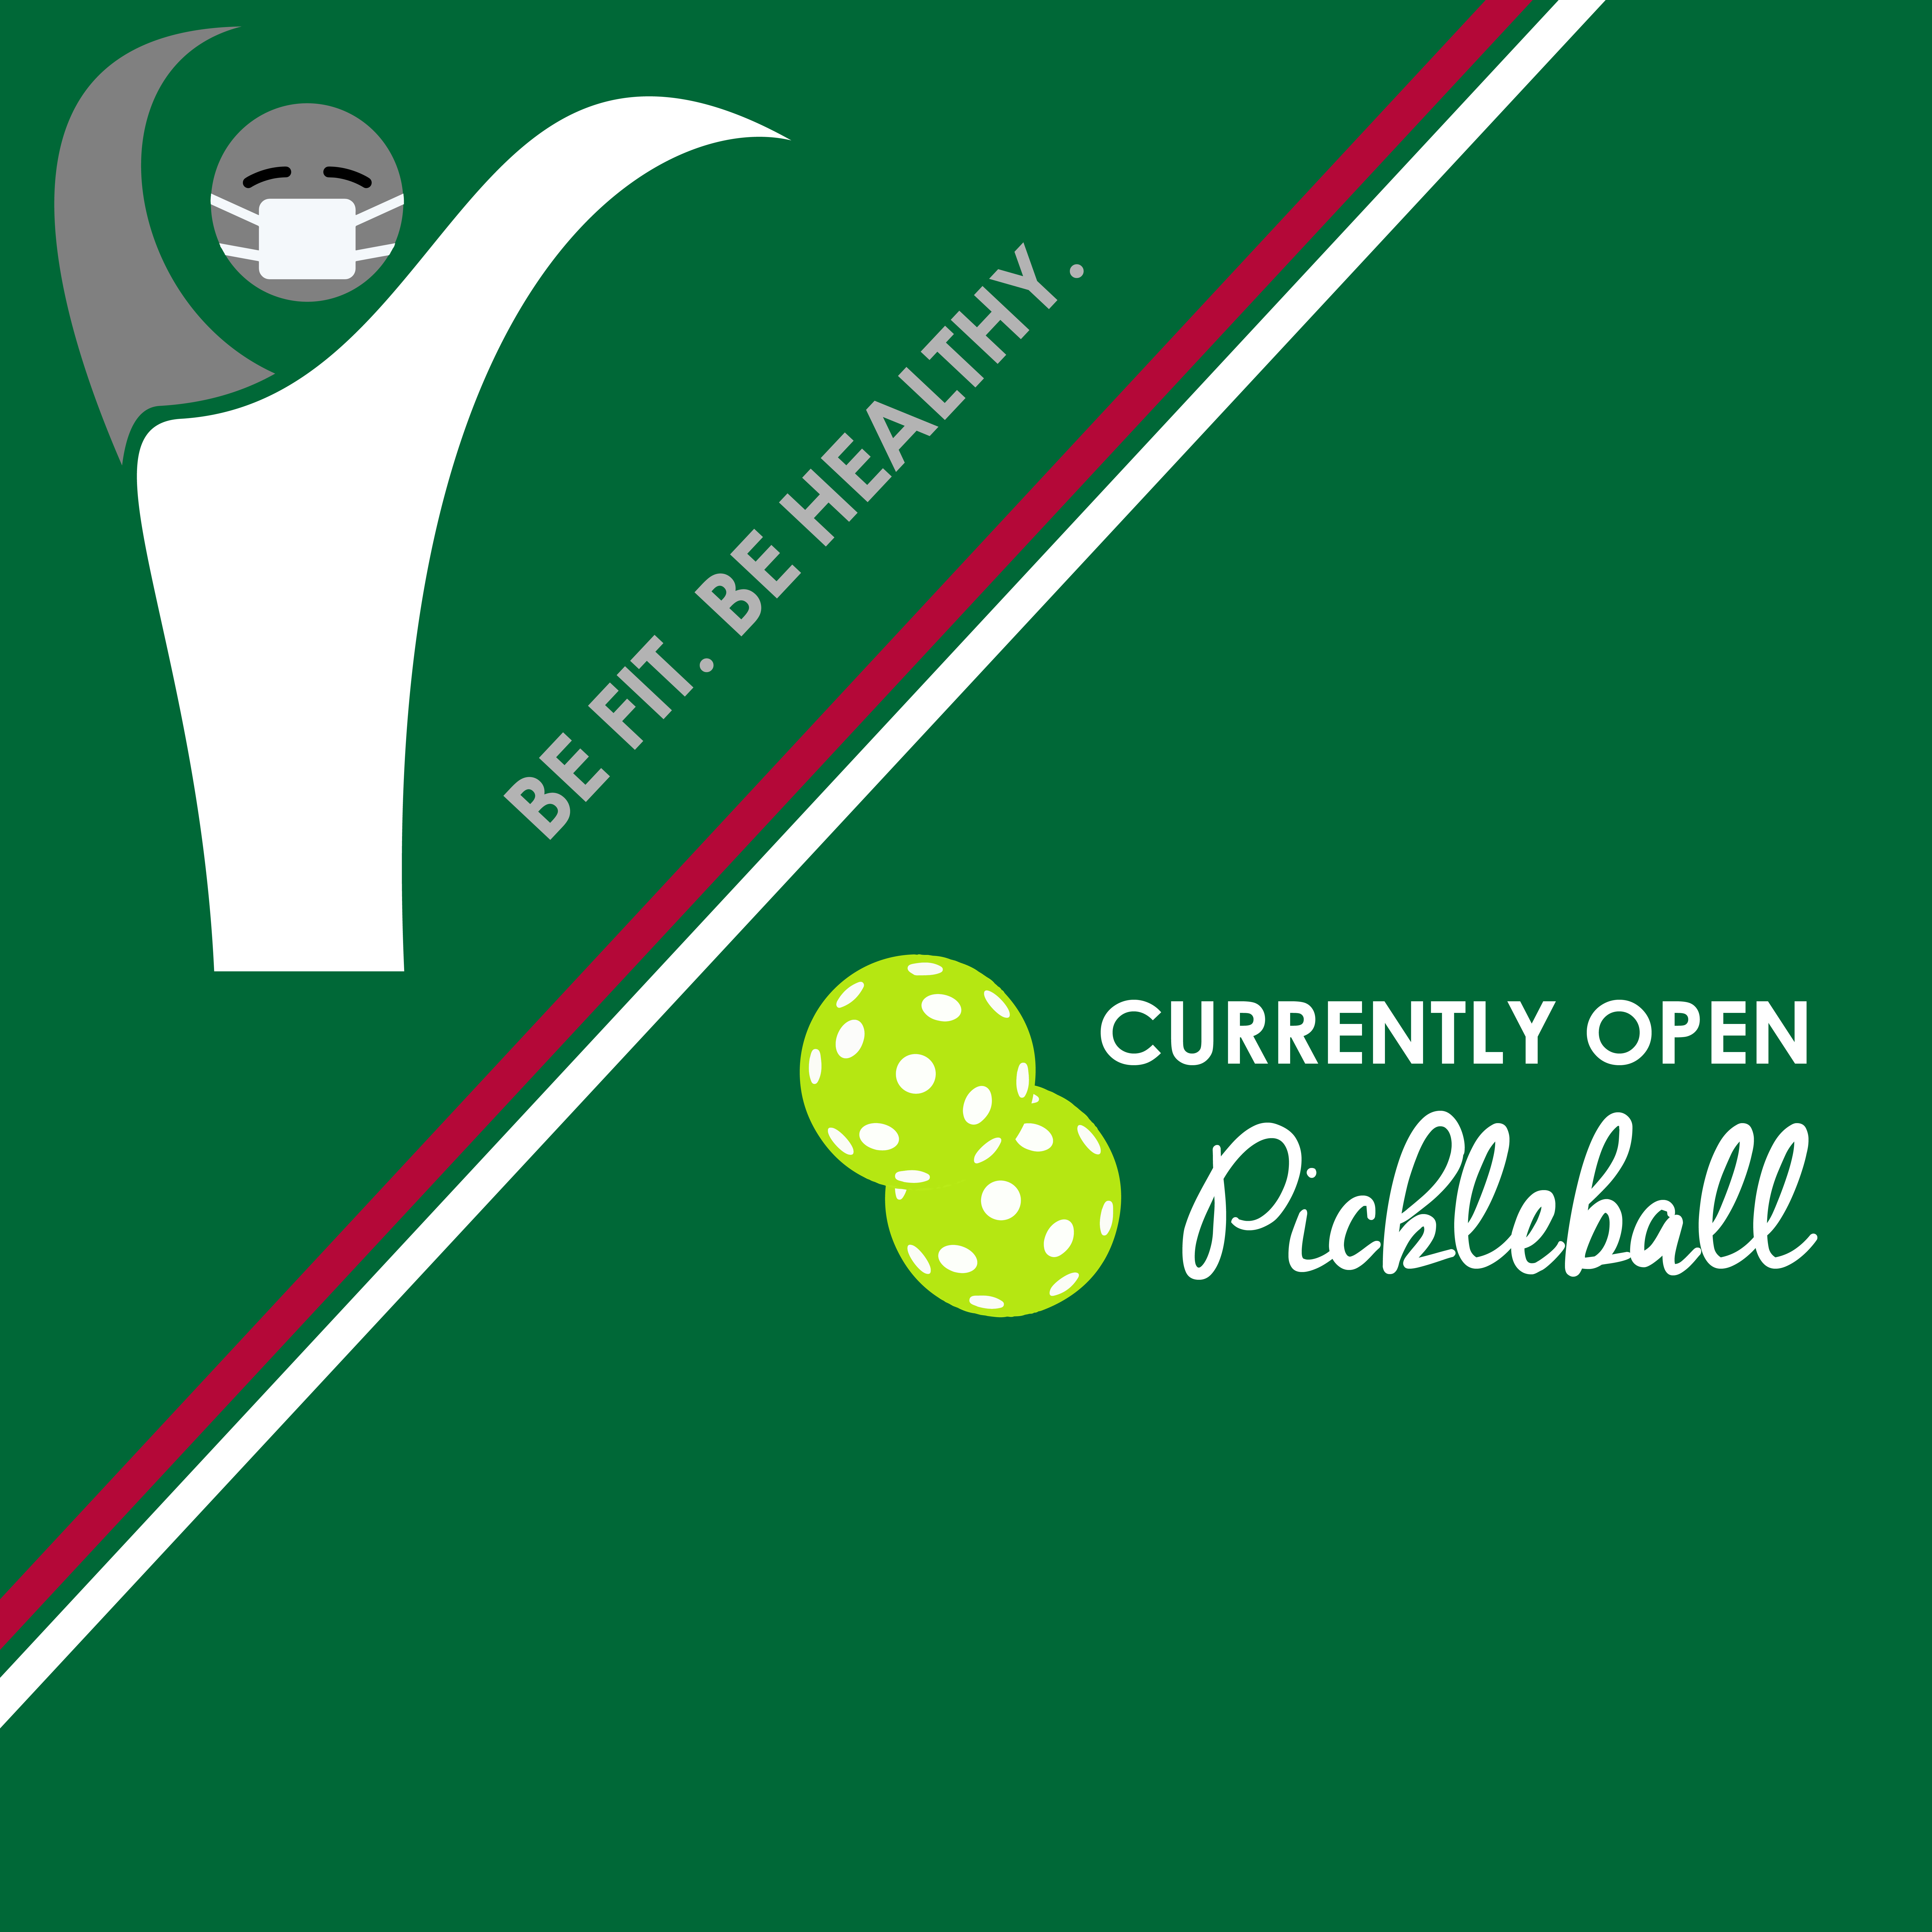 Pickleball is available with court reservation